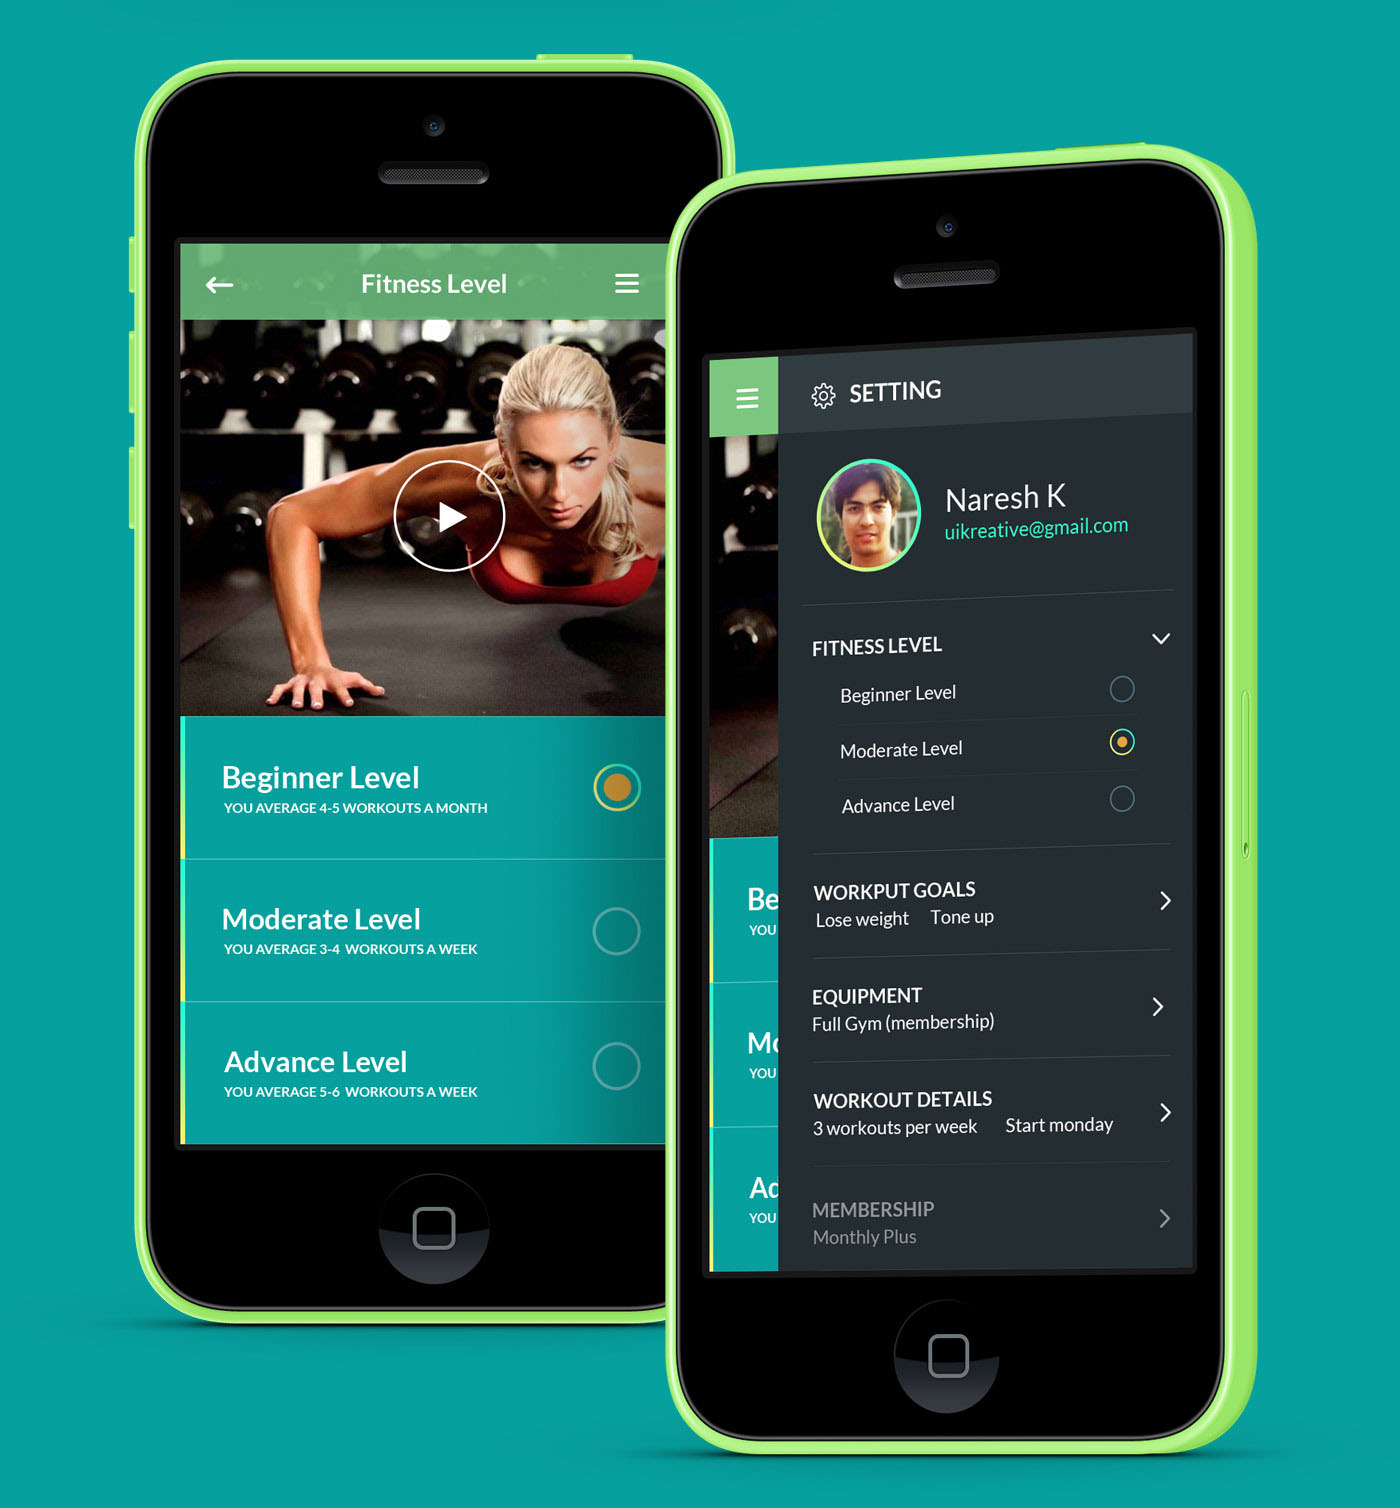 fitness,Health,workout,app,ios,Web,FIT,gym,user interface,clean,mobile,fitness app